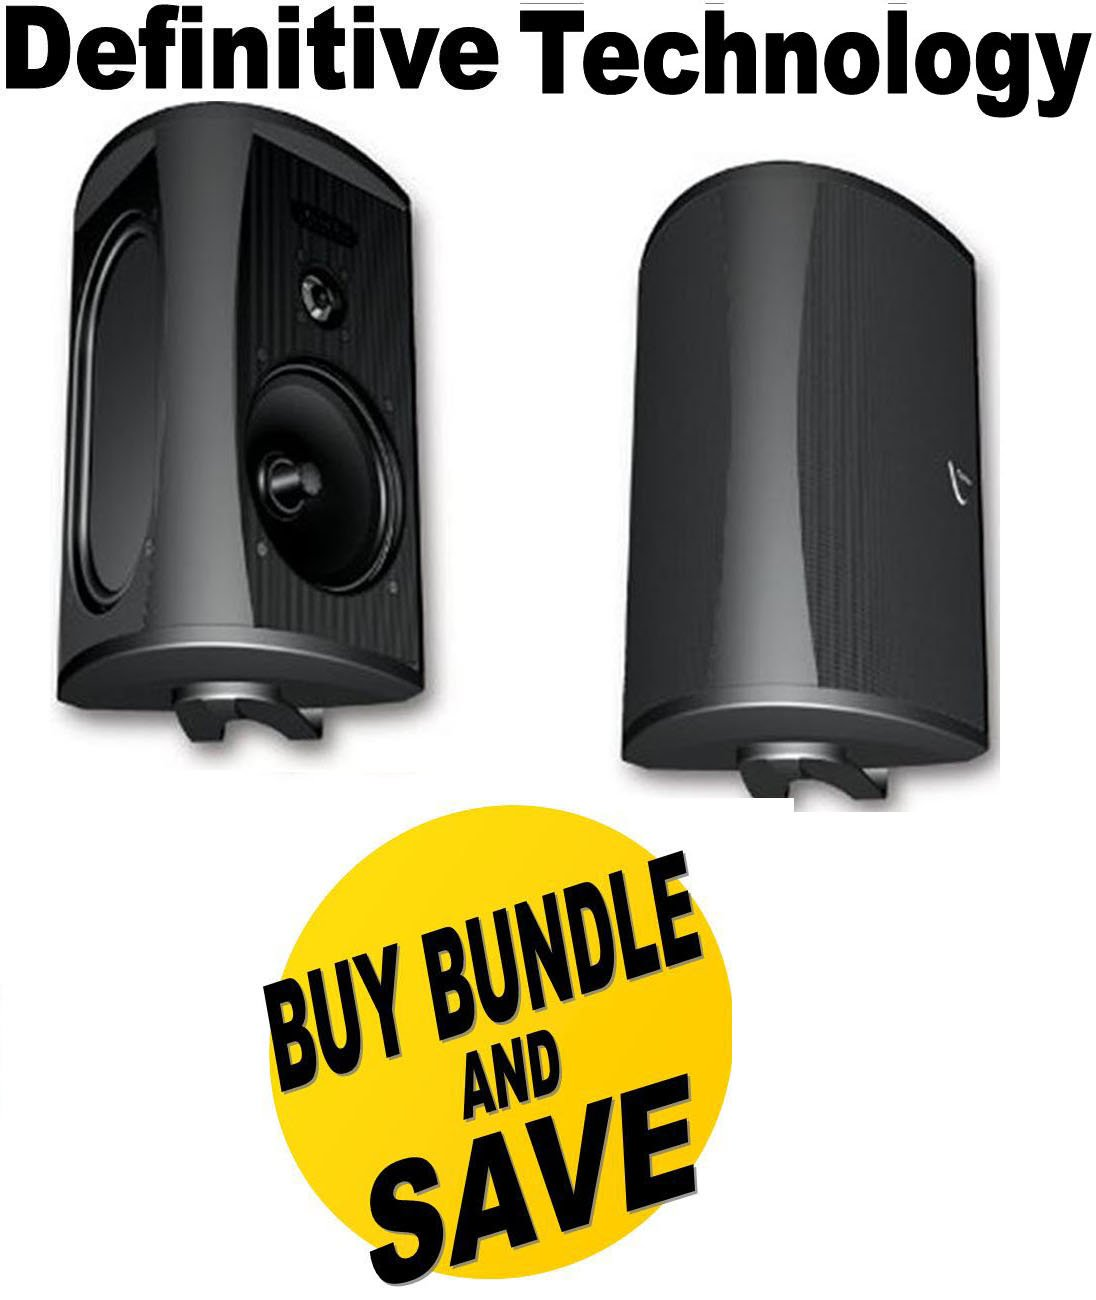 Definitive Technology AW 6500 Outdoor Speakers (Pair) - Black Bundle